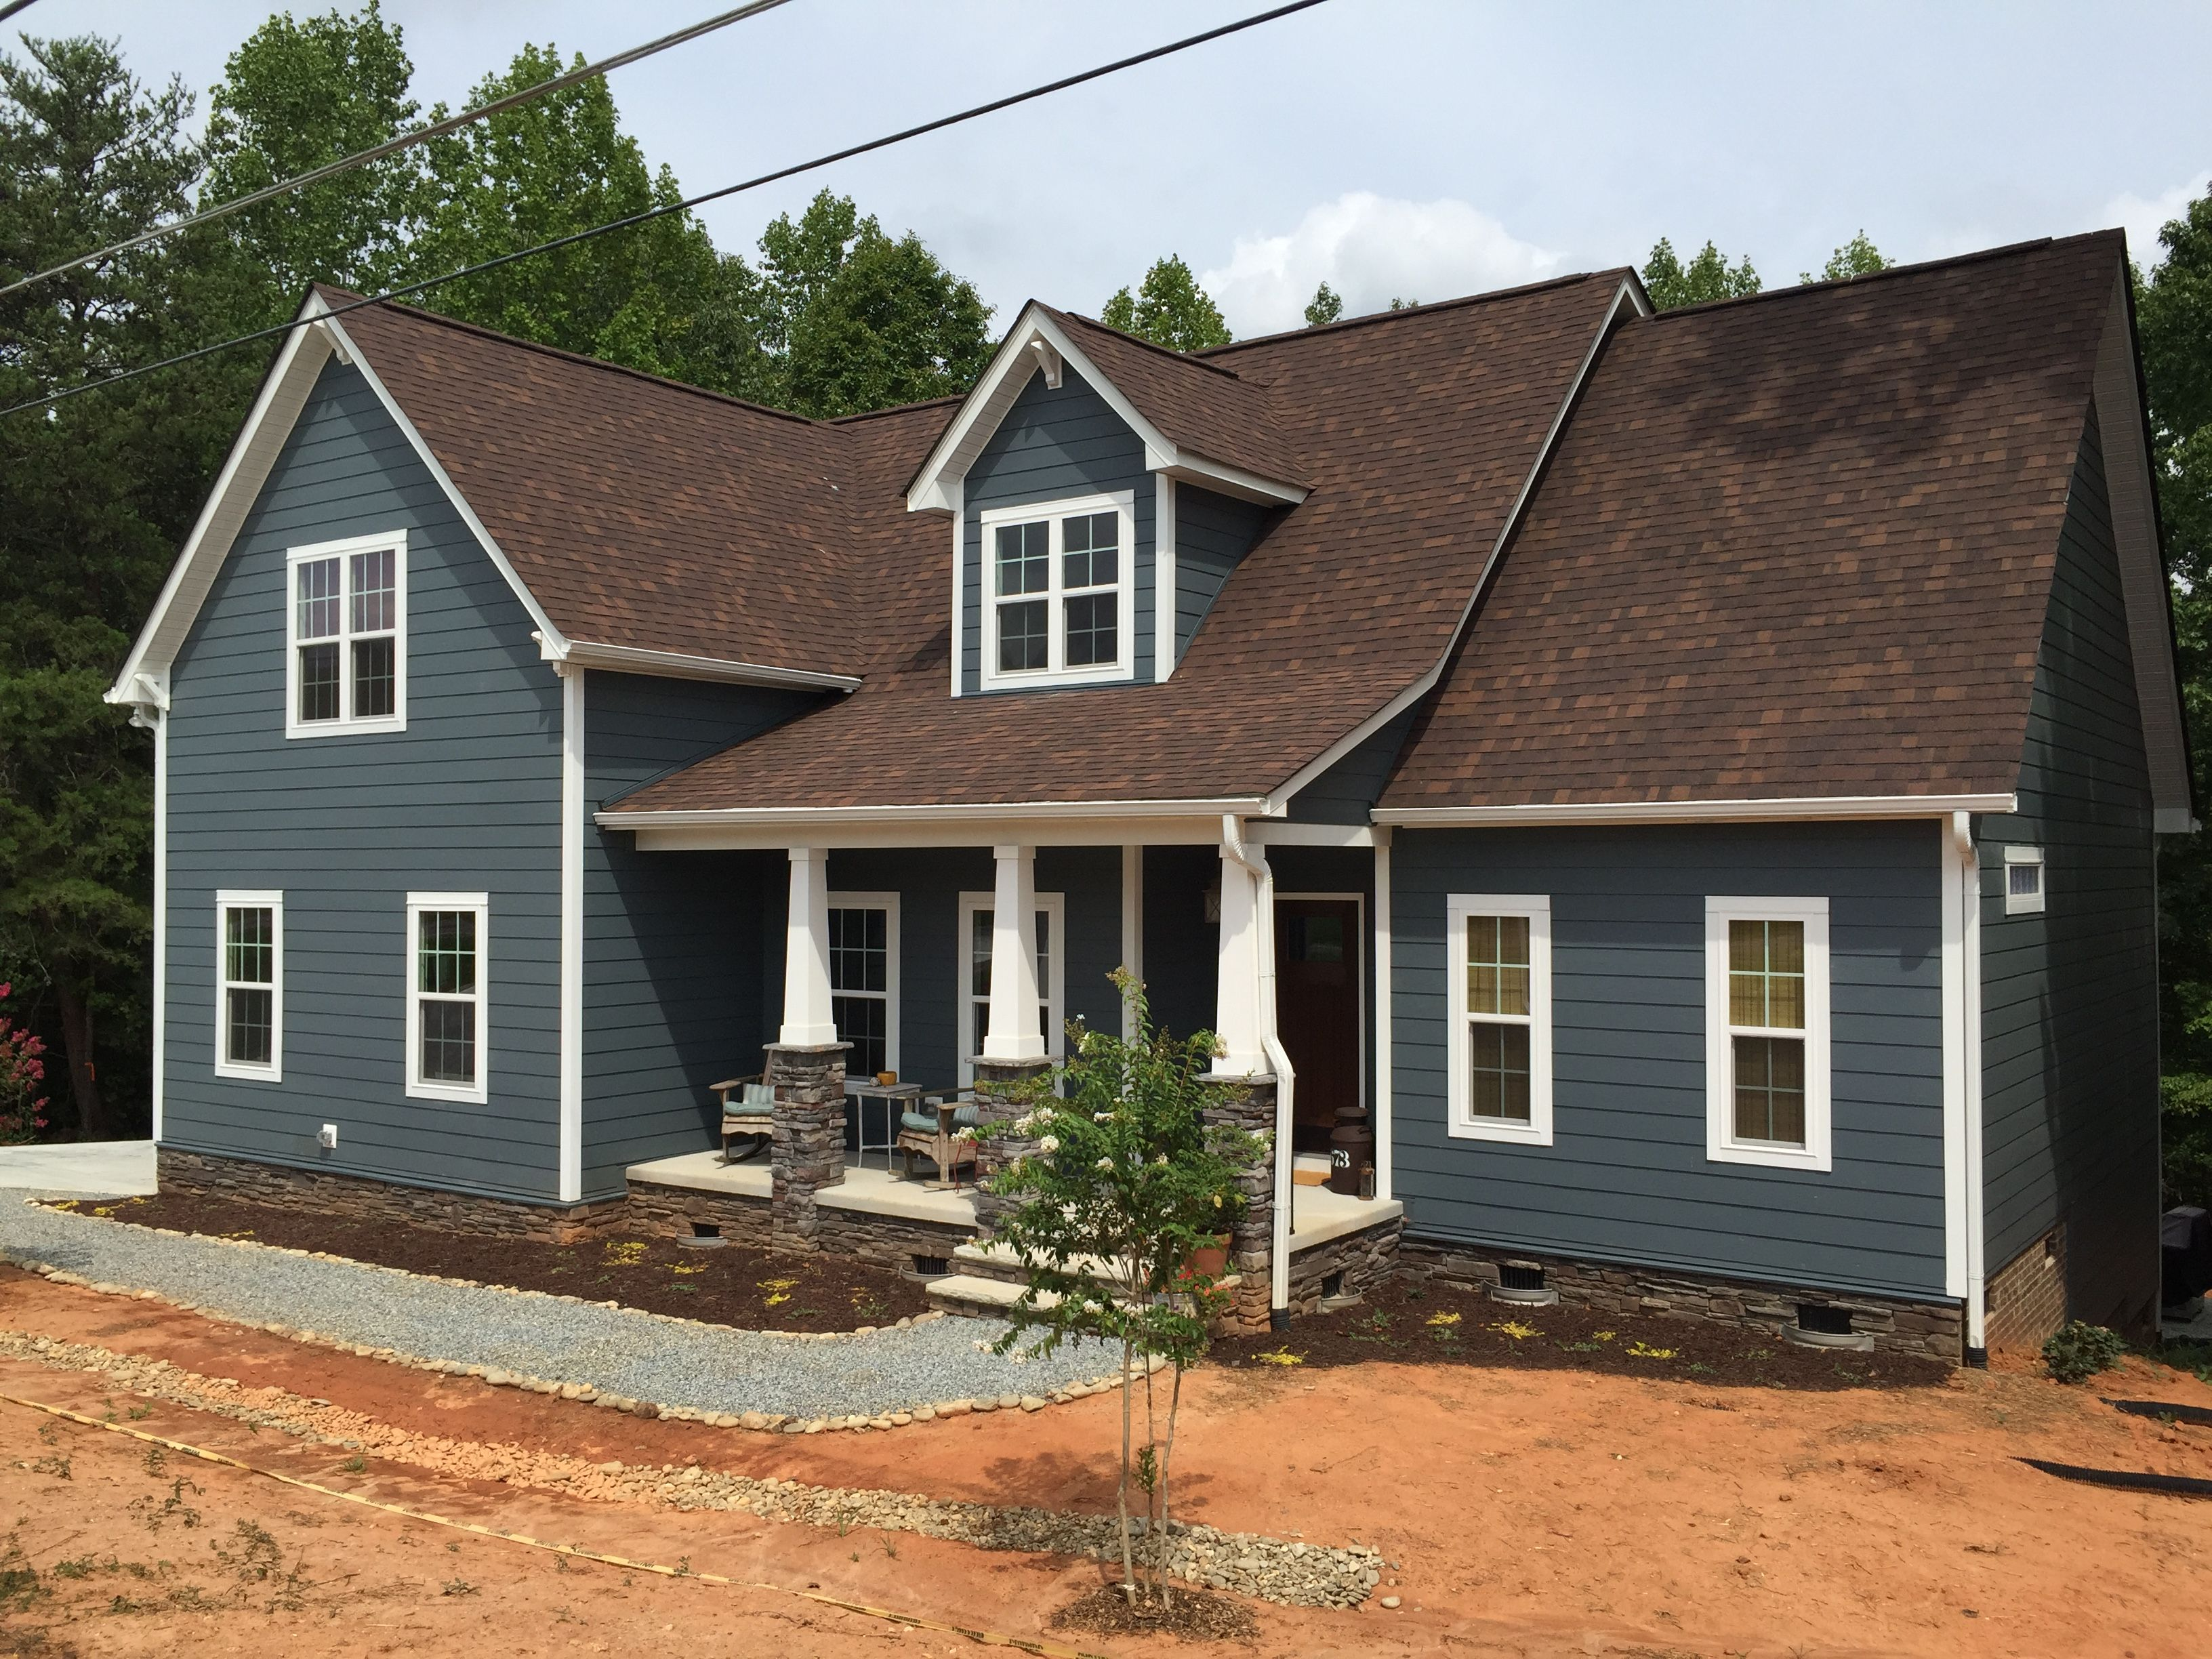 Blue Craftsman Home James Hardie Evening Blue Brown Roof Ledgestone Pea Gravel Walkway